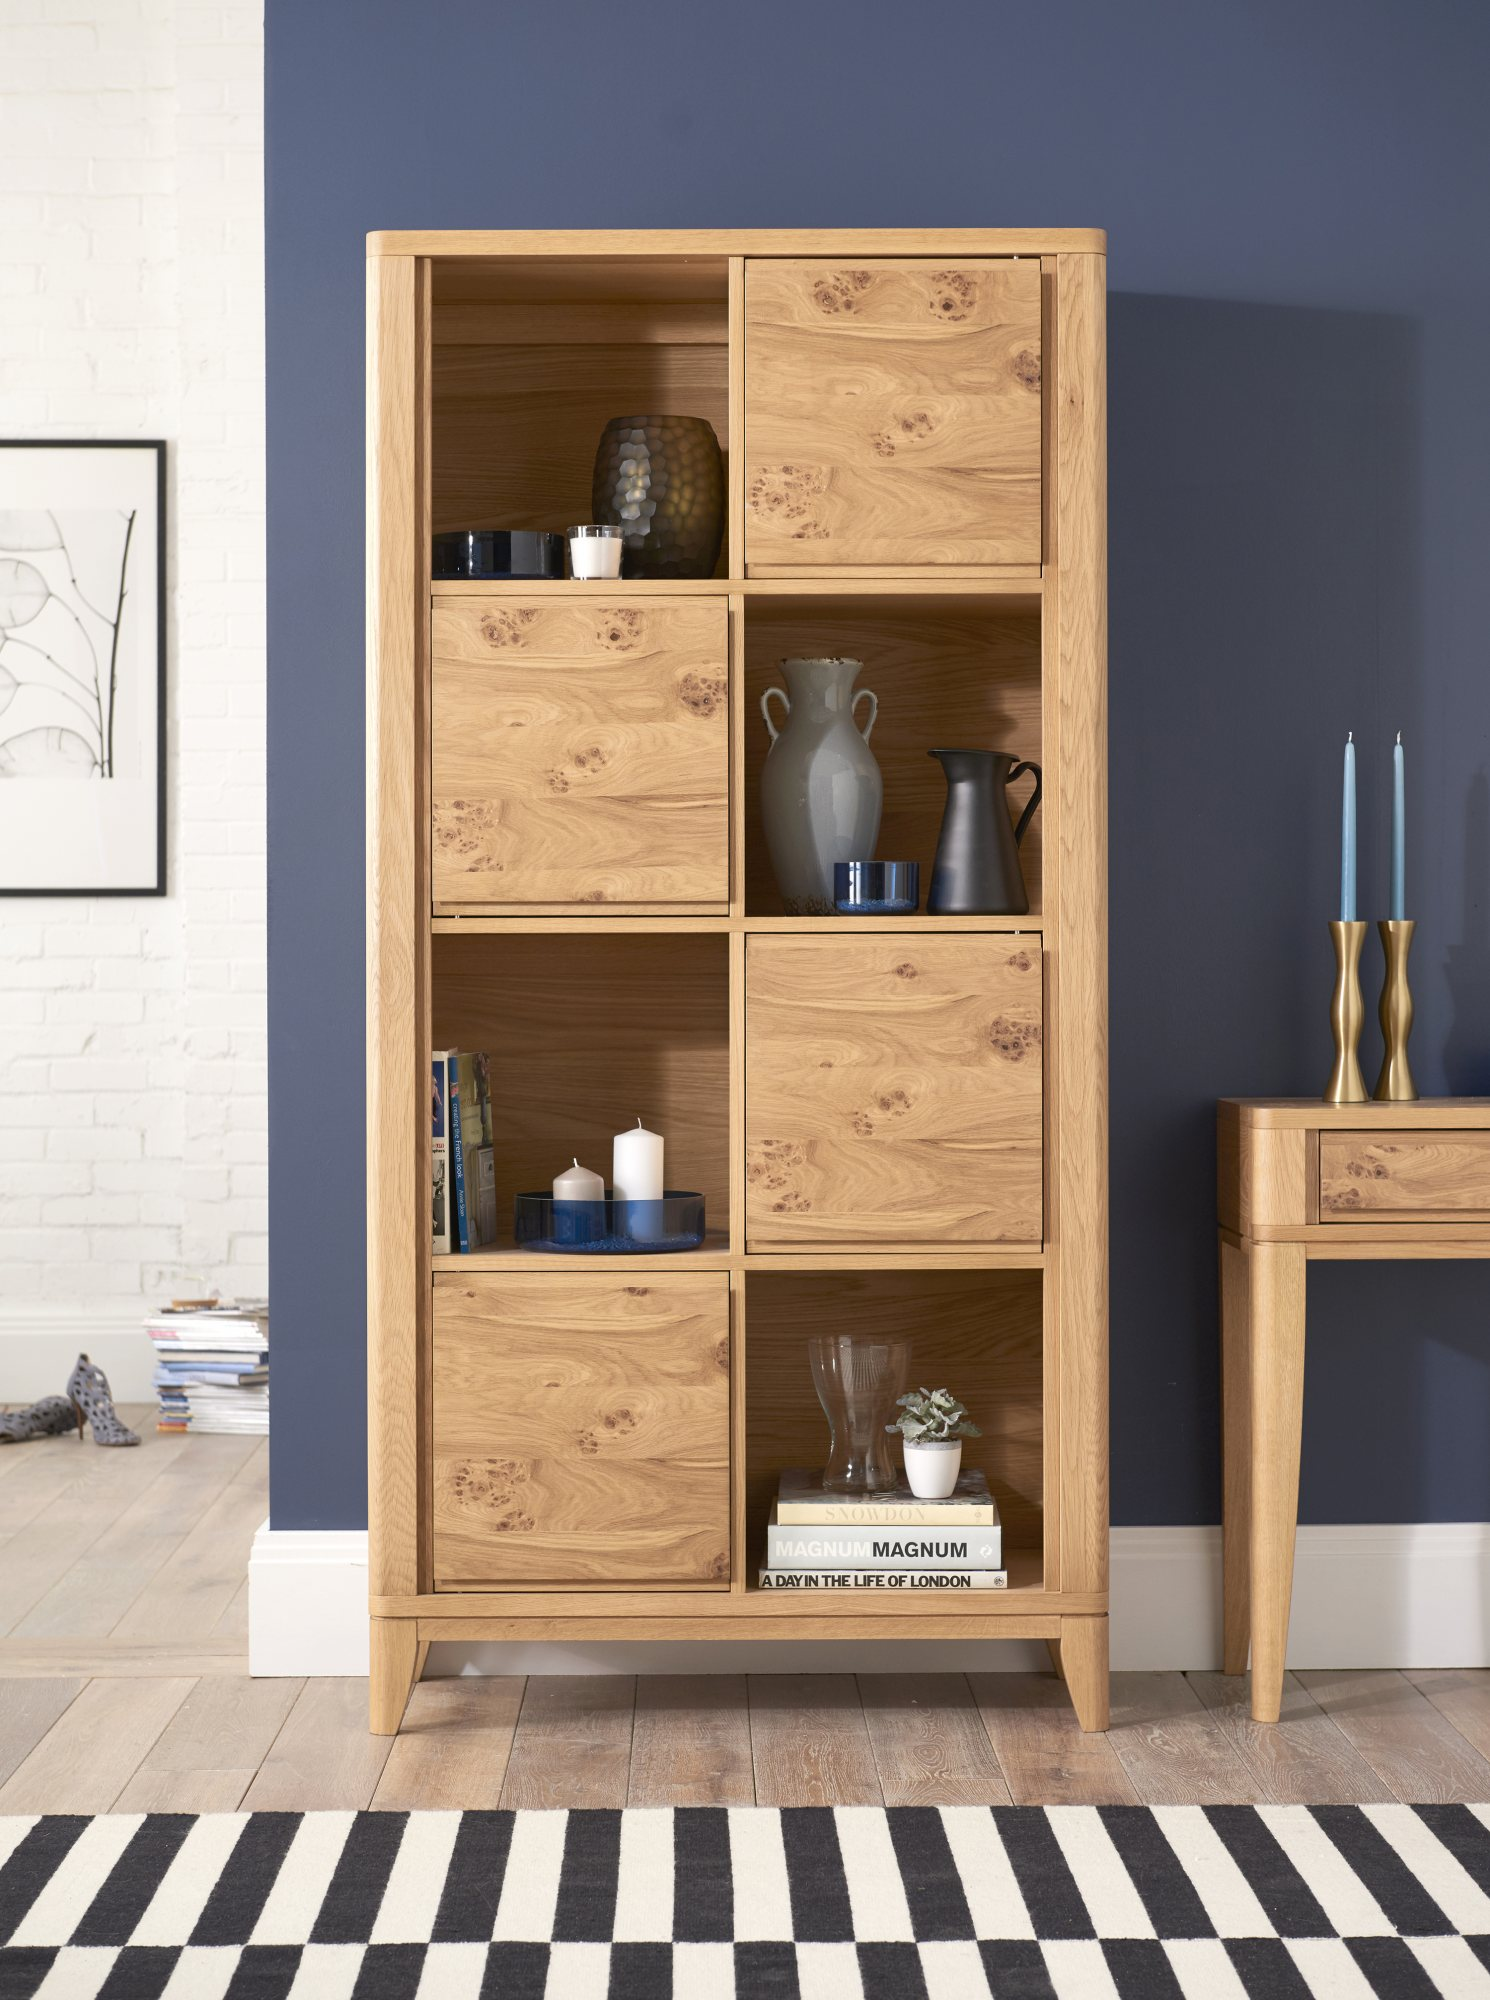 WILLOW PARK BOOKCASE - L95cm x D38cm x H192cm